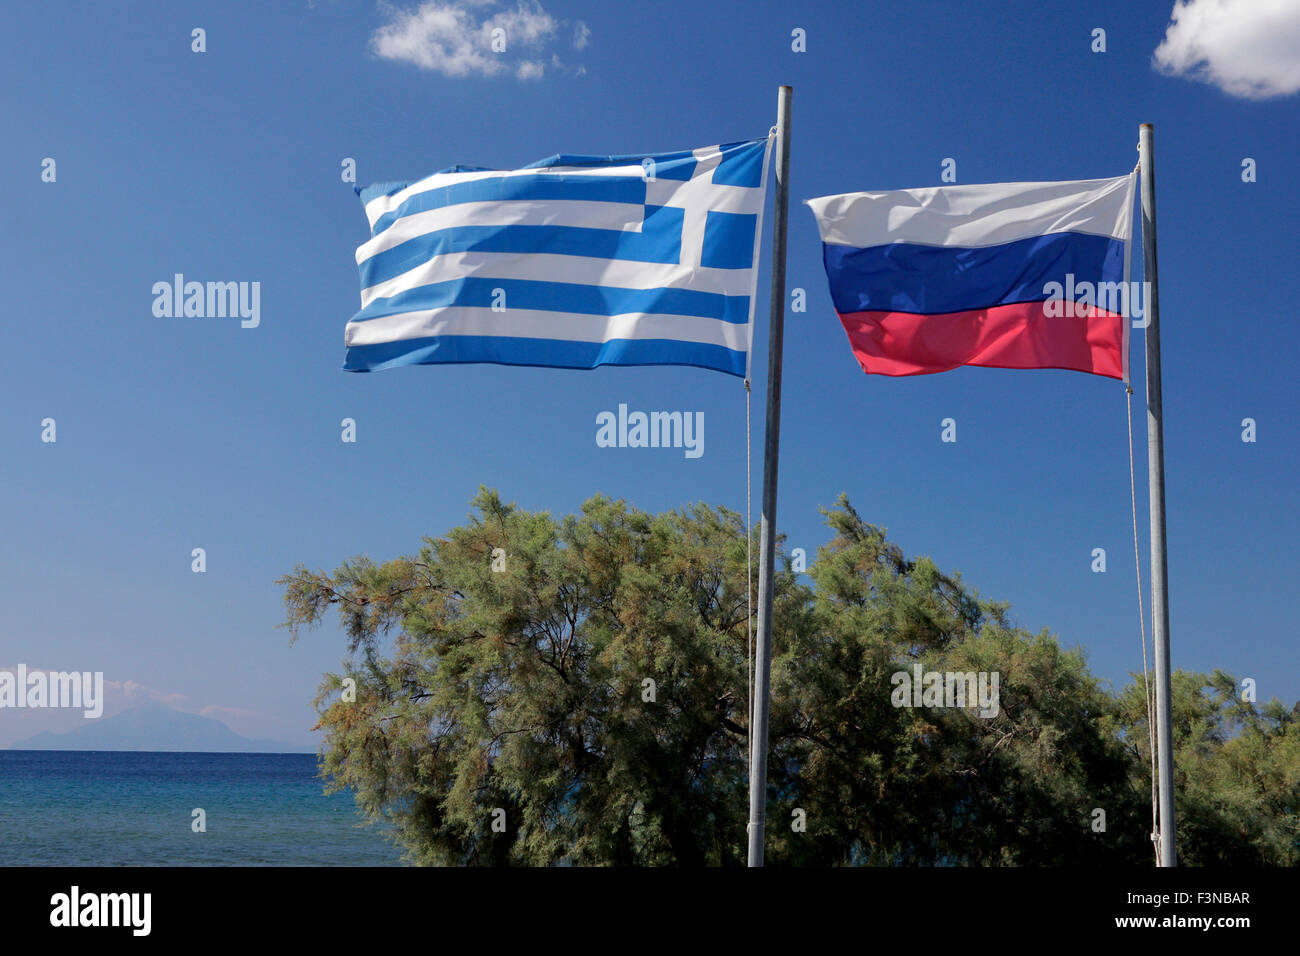 Russian & Greek flags of the Russian naval memorial and Holy mt. Athos (Chalkidiki peninsula) silhouetted on - Stock Image